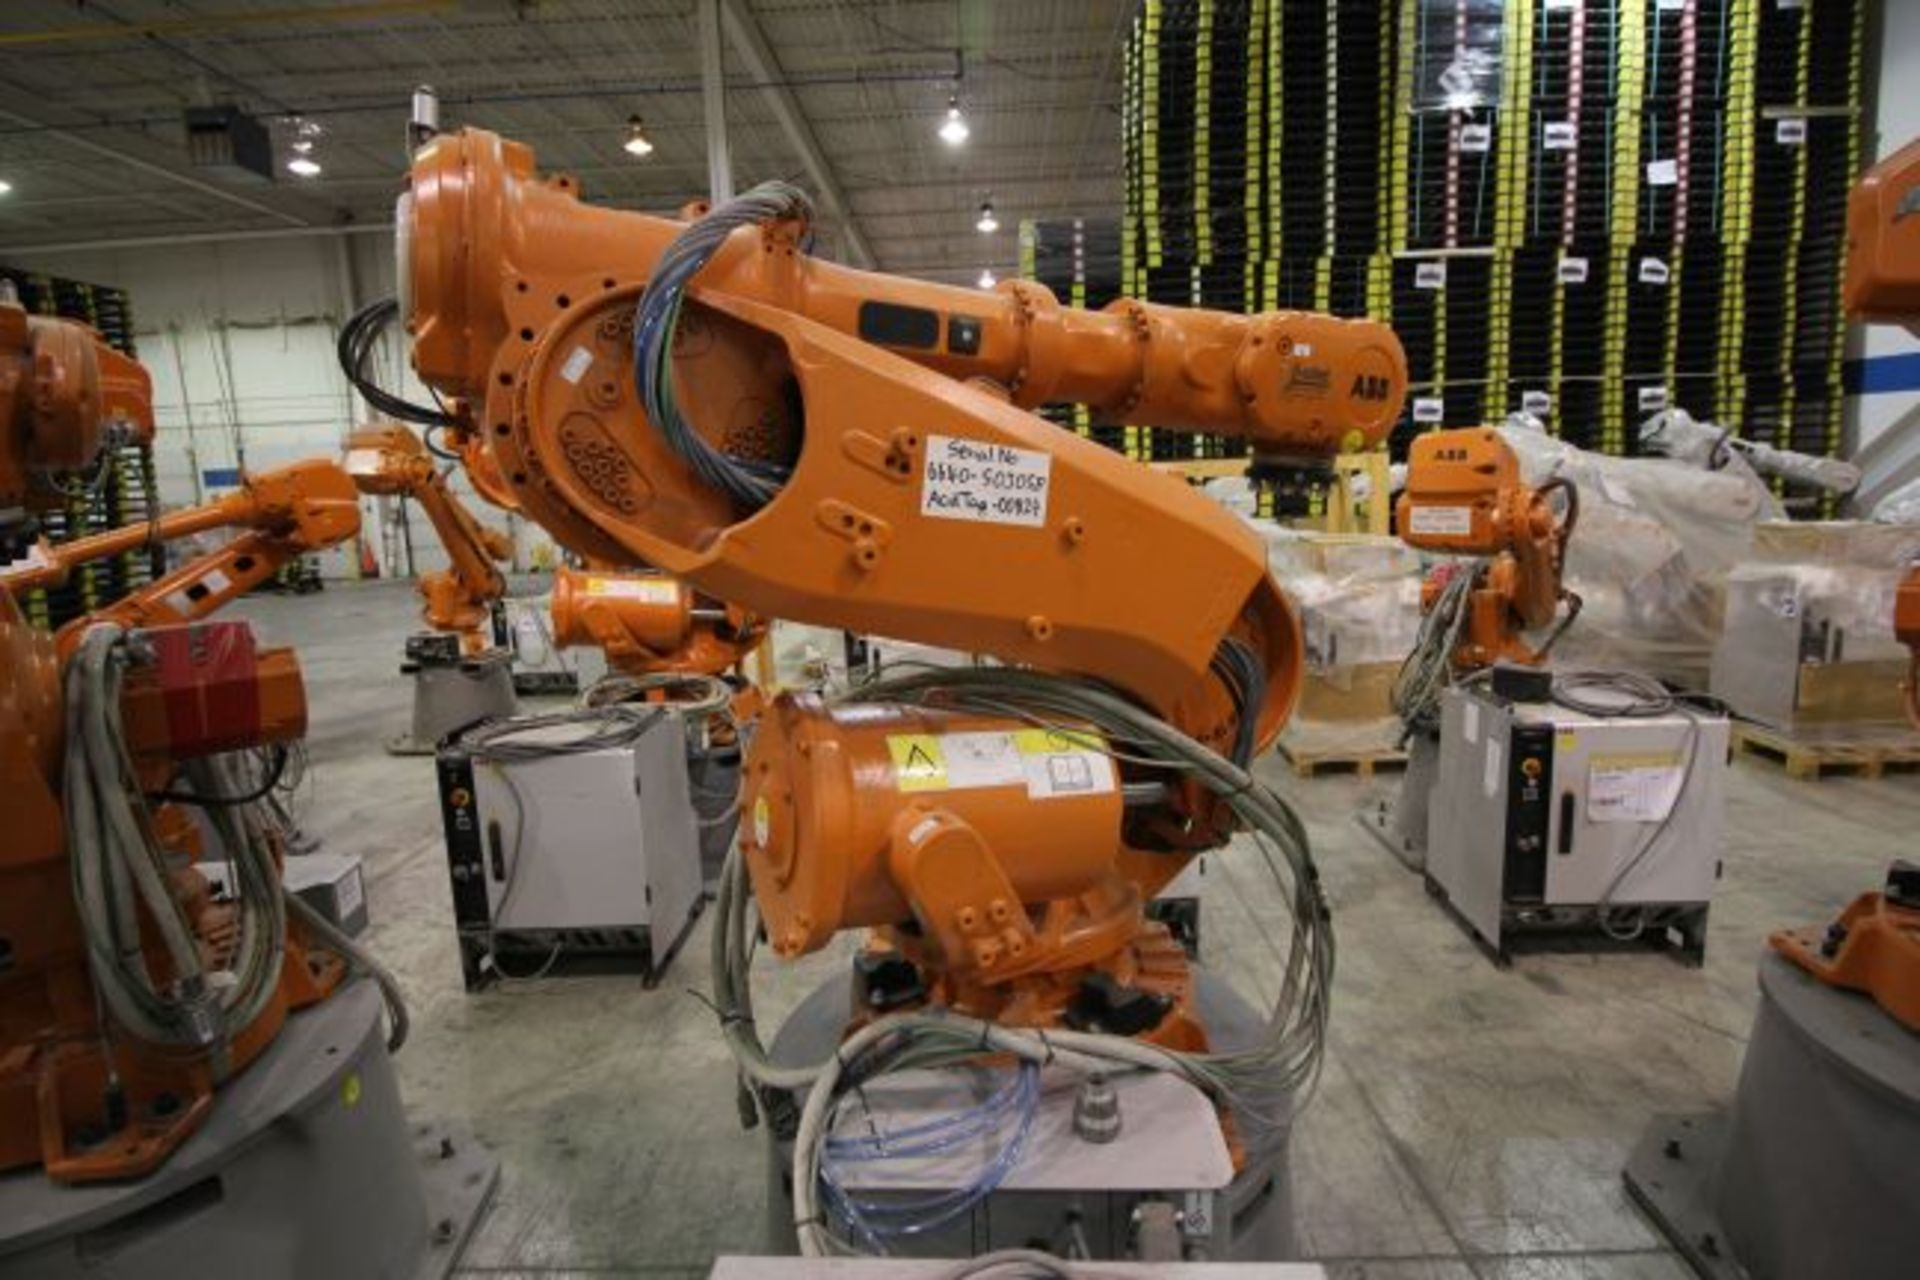 ABB ROBOT IRB 6640 2.8/185 WITH IRC5 CONTROLS, YEAR 2014, SN 503058 TEACH PENDANT & CABLES - Image 2 of 9